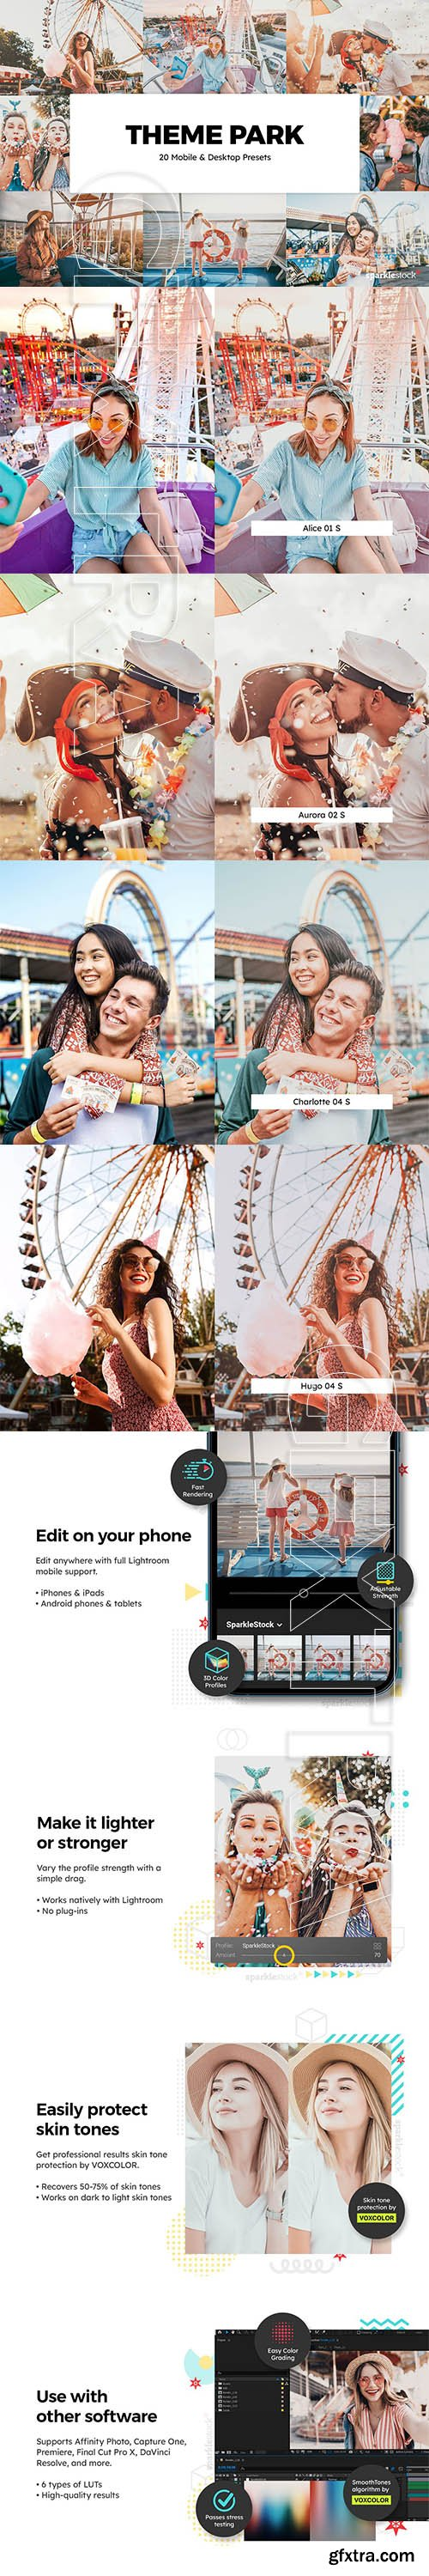 CreativeMarket - 20 Theme Park Lightroom Presets & LUTs 6086209